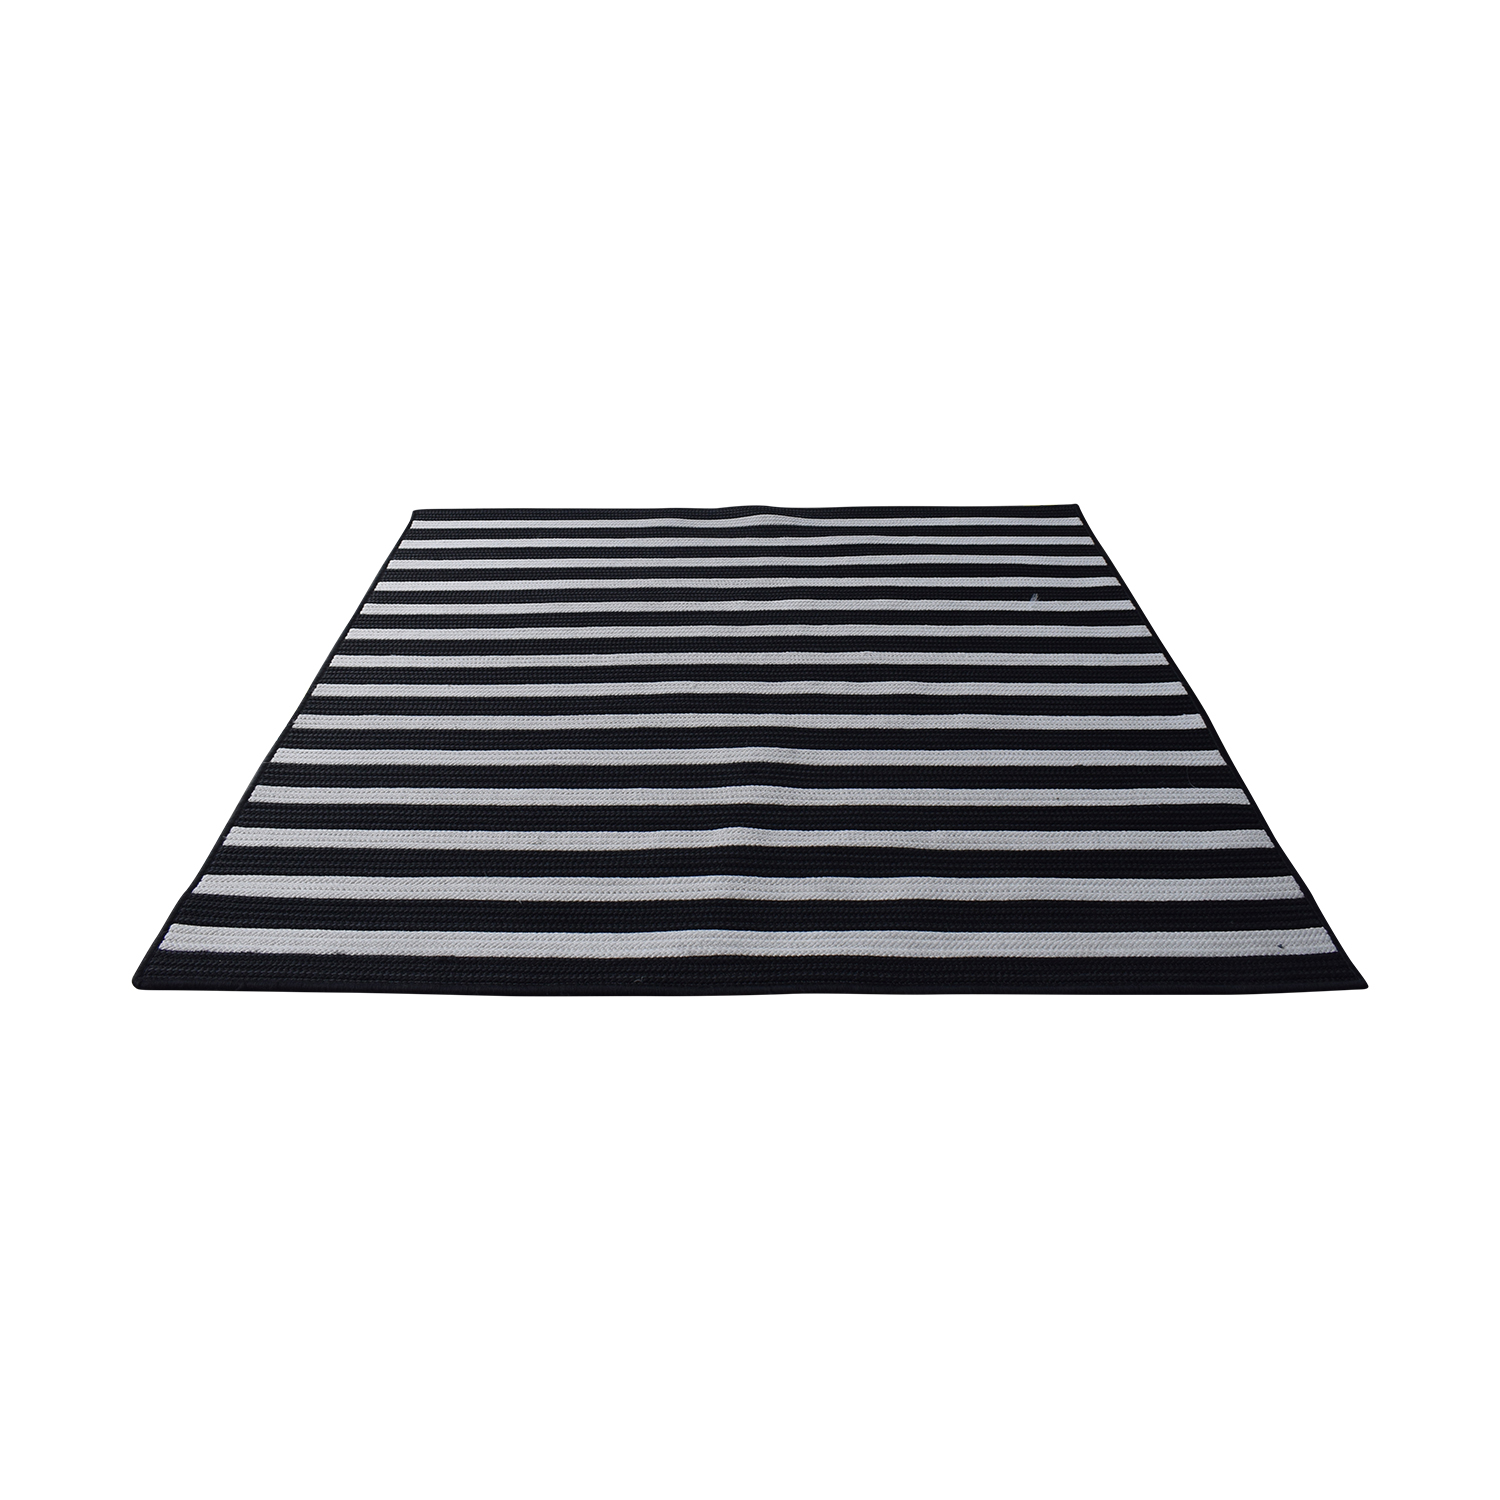 Viv + Rae Black and White Rug / Decor